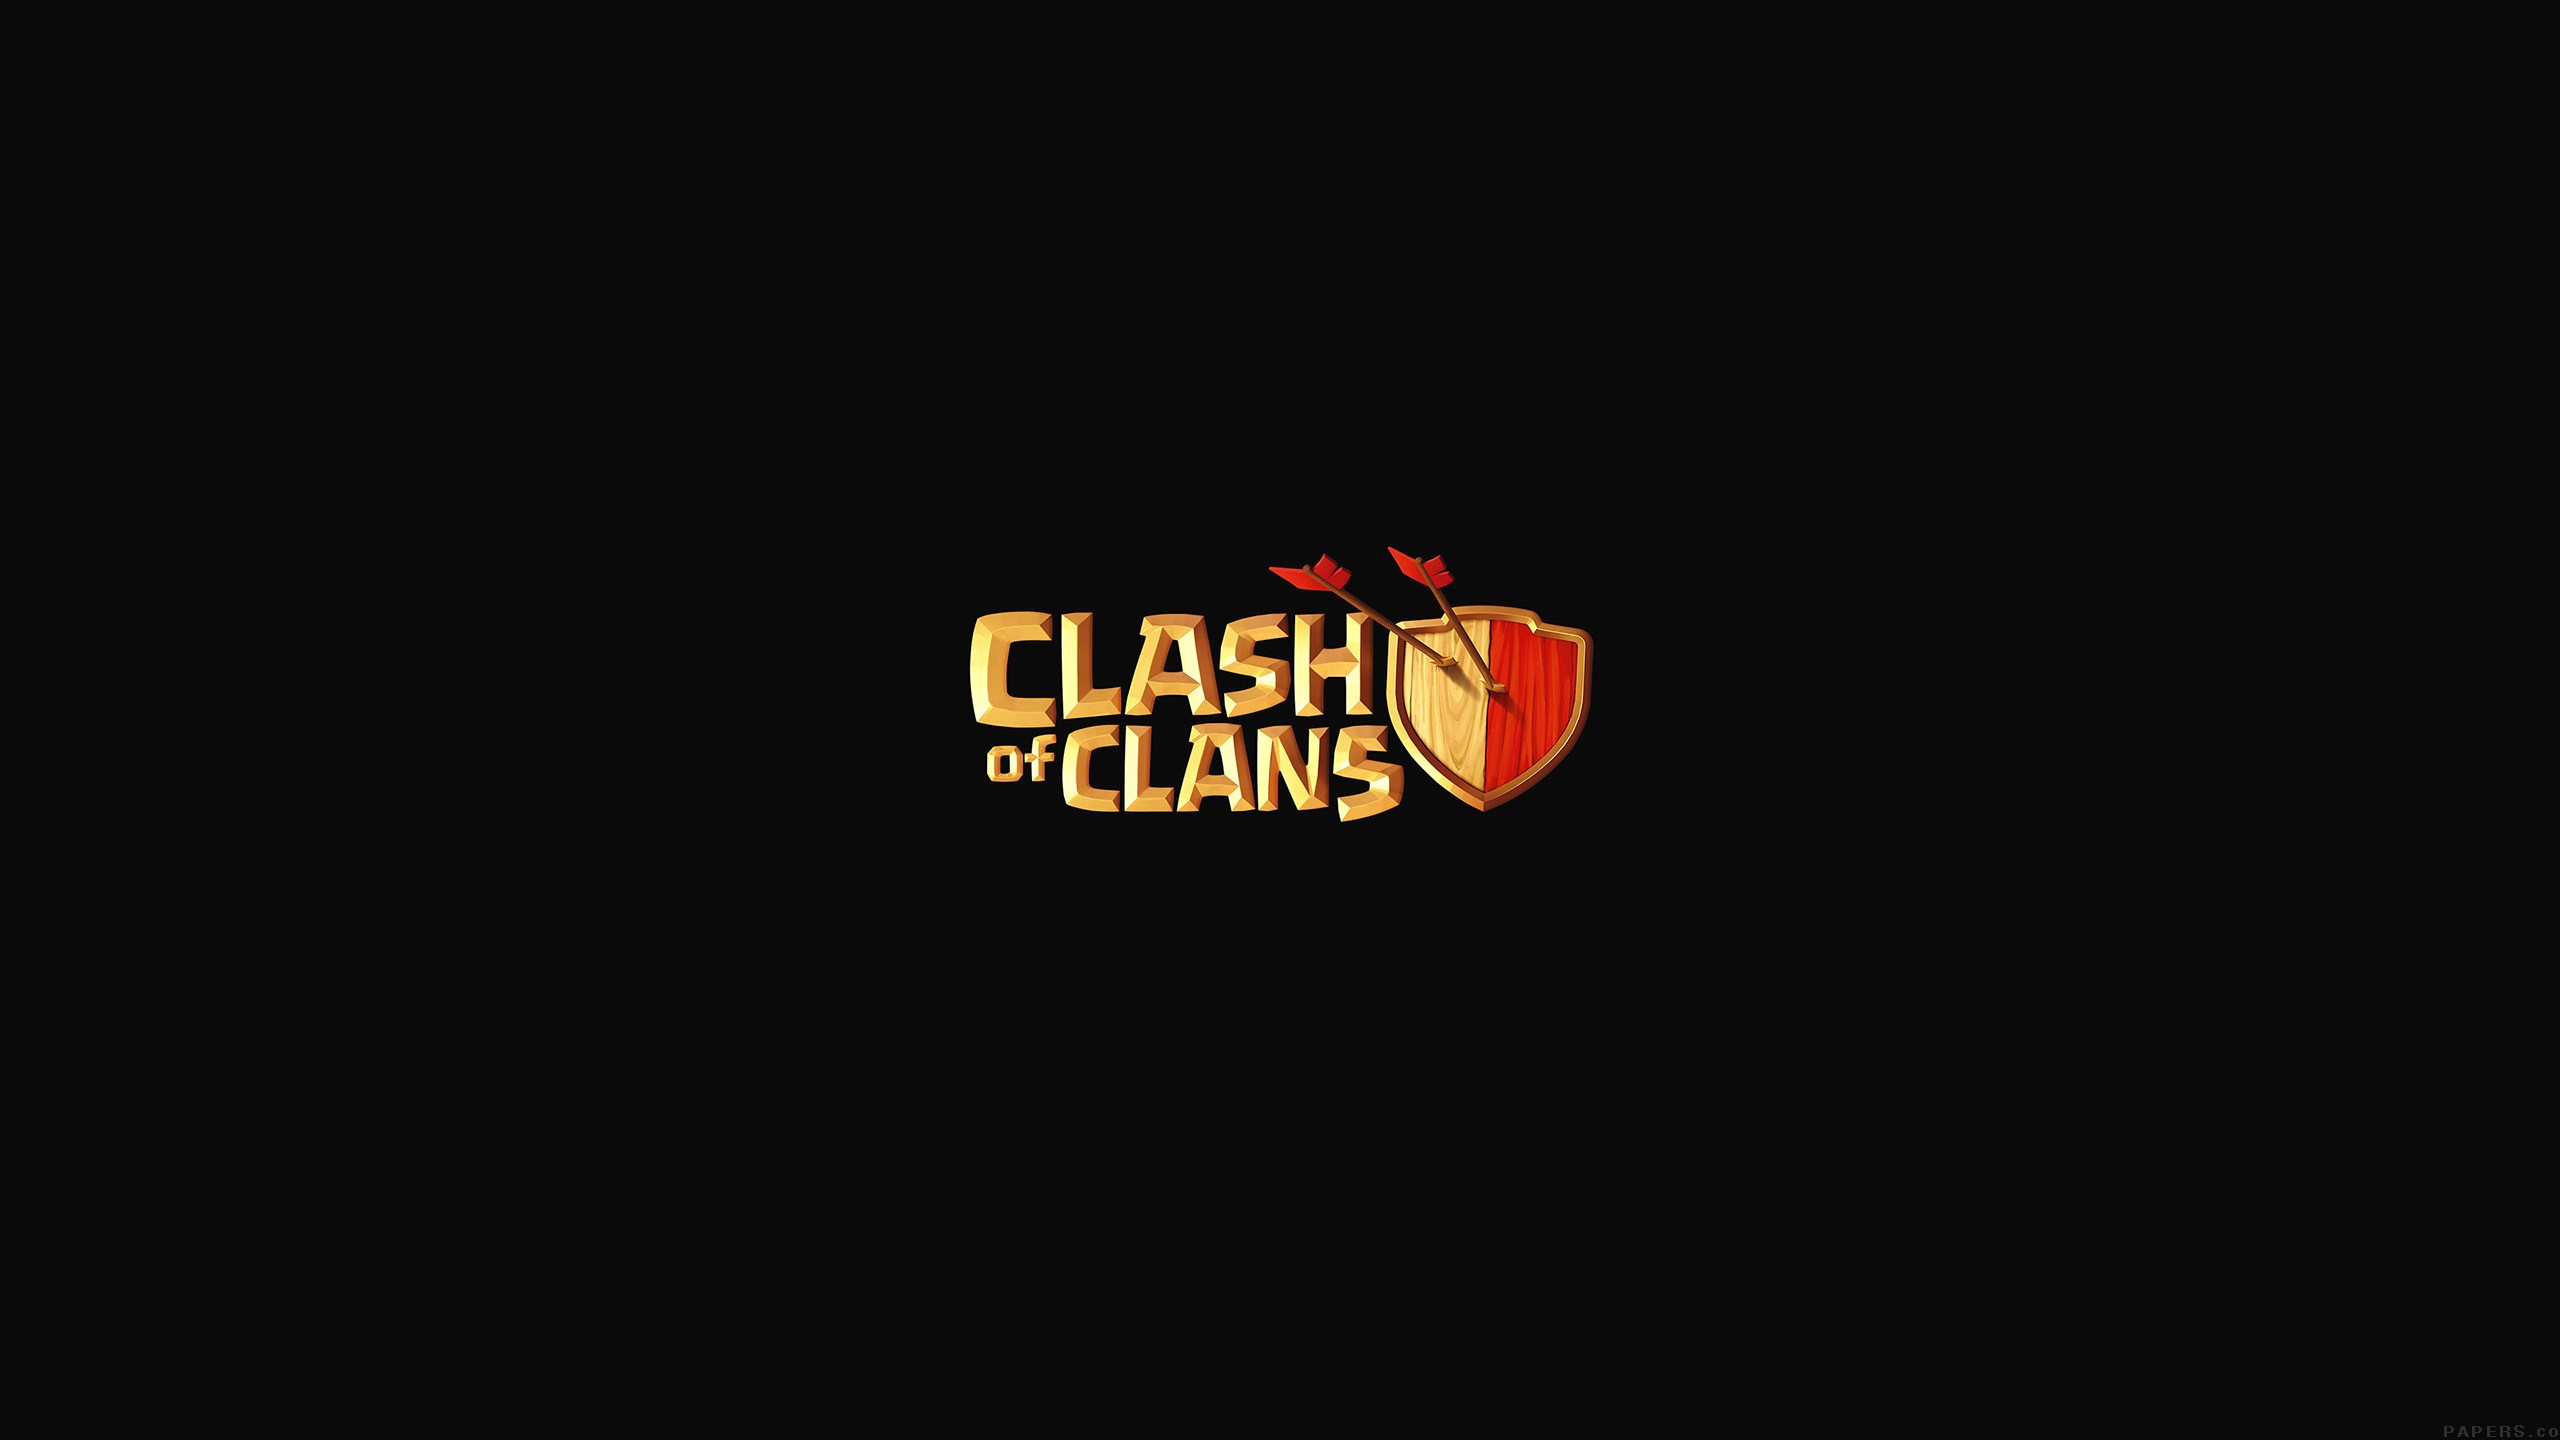 Clash of Clans Wallpapers For Samsung Galaxy S6 2560x1440